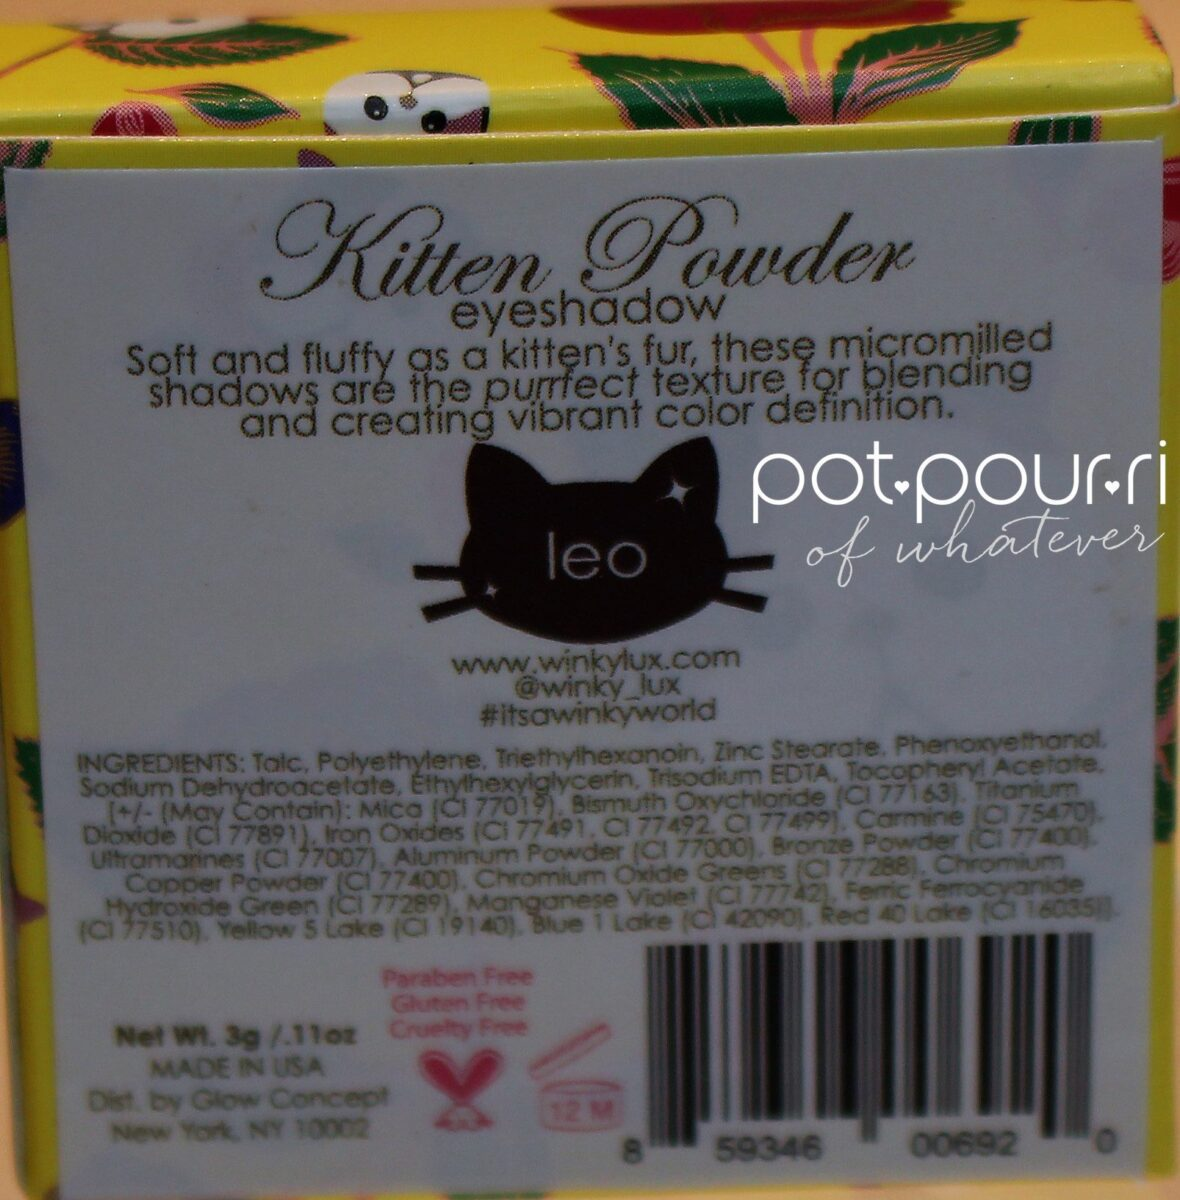 Winky-Lux-Kitten-powder-eyeshadow-Leo